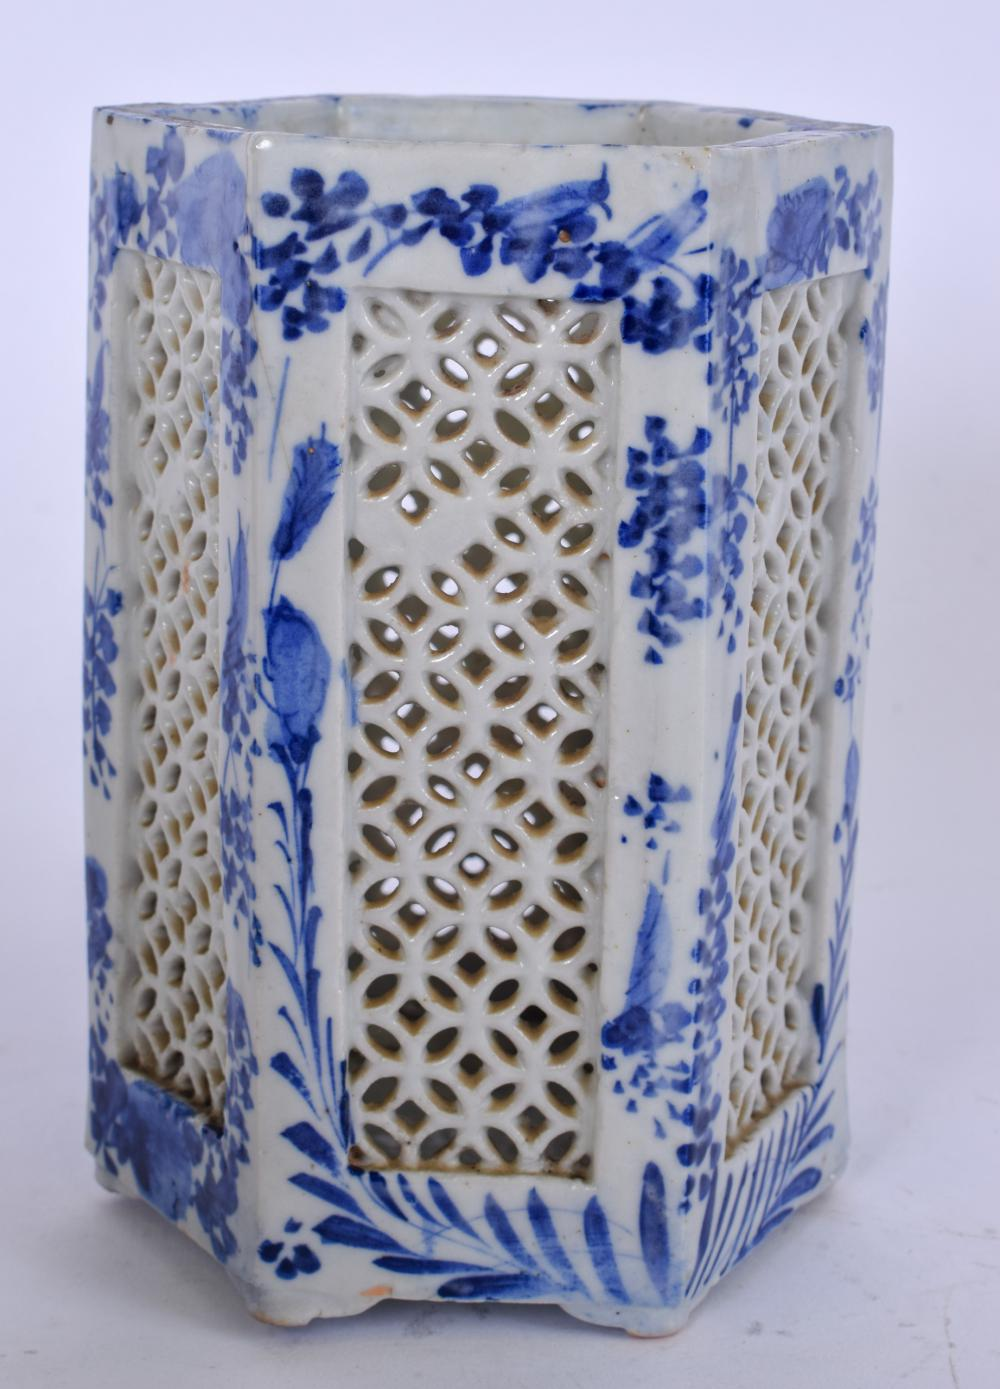 AN EARLY 8TH CENTURY JAPANESE BLUE AND WHITE PORCELAIN PLANTER